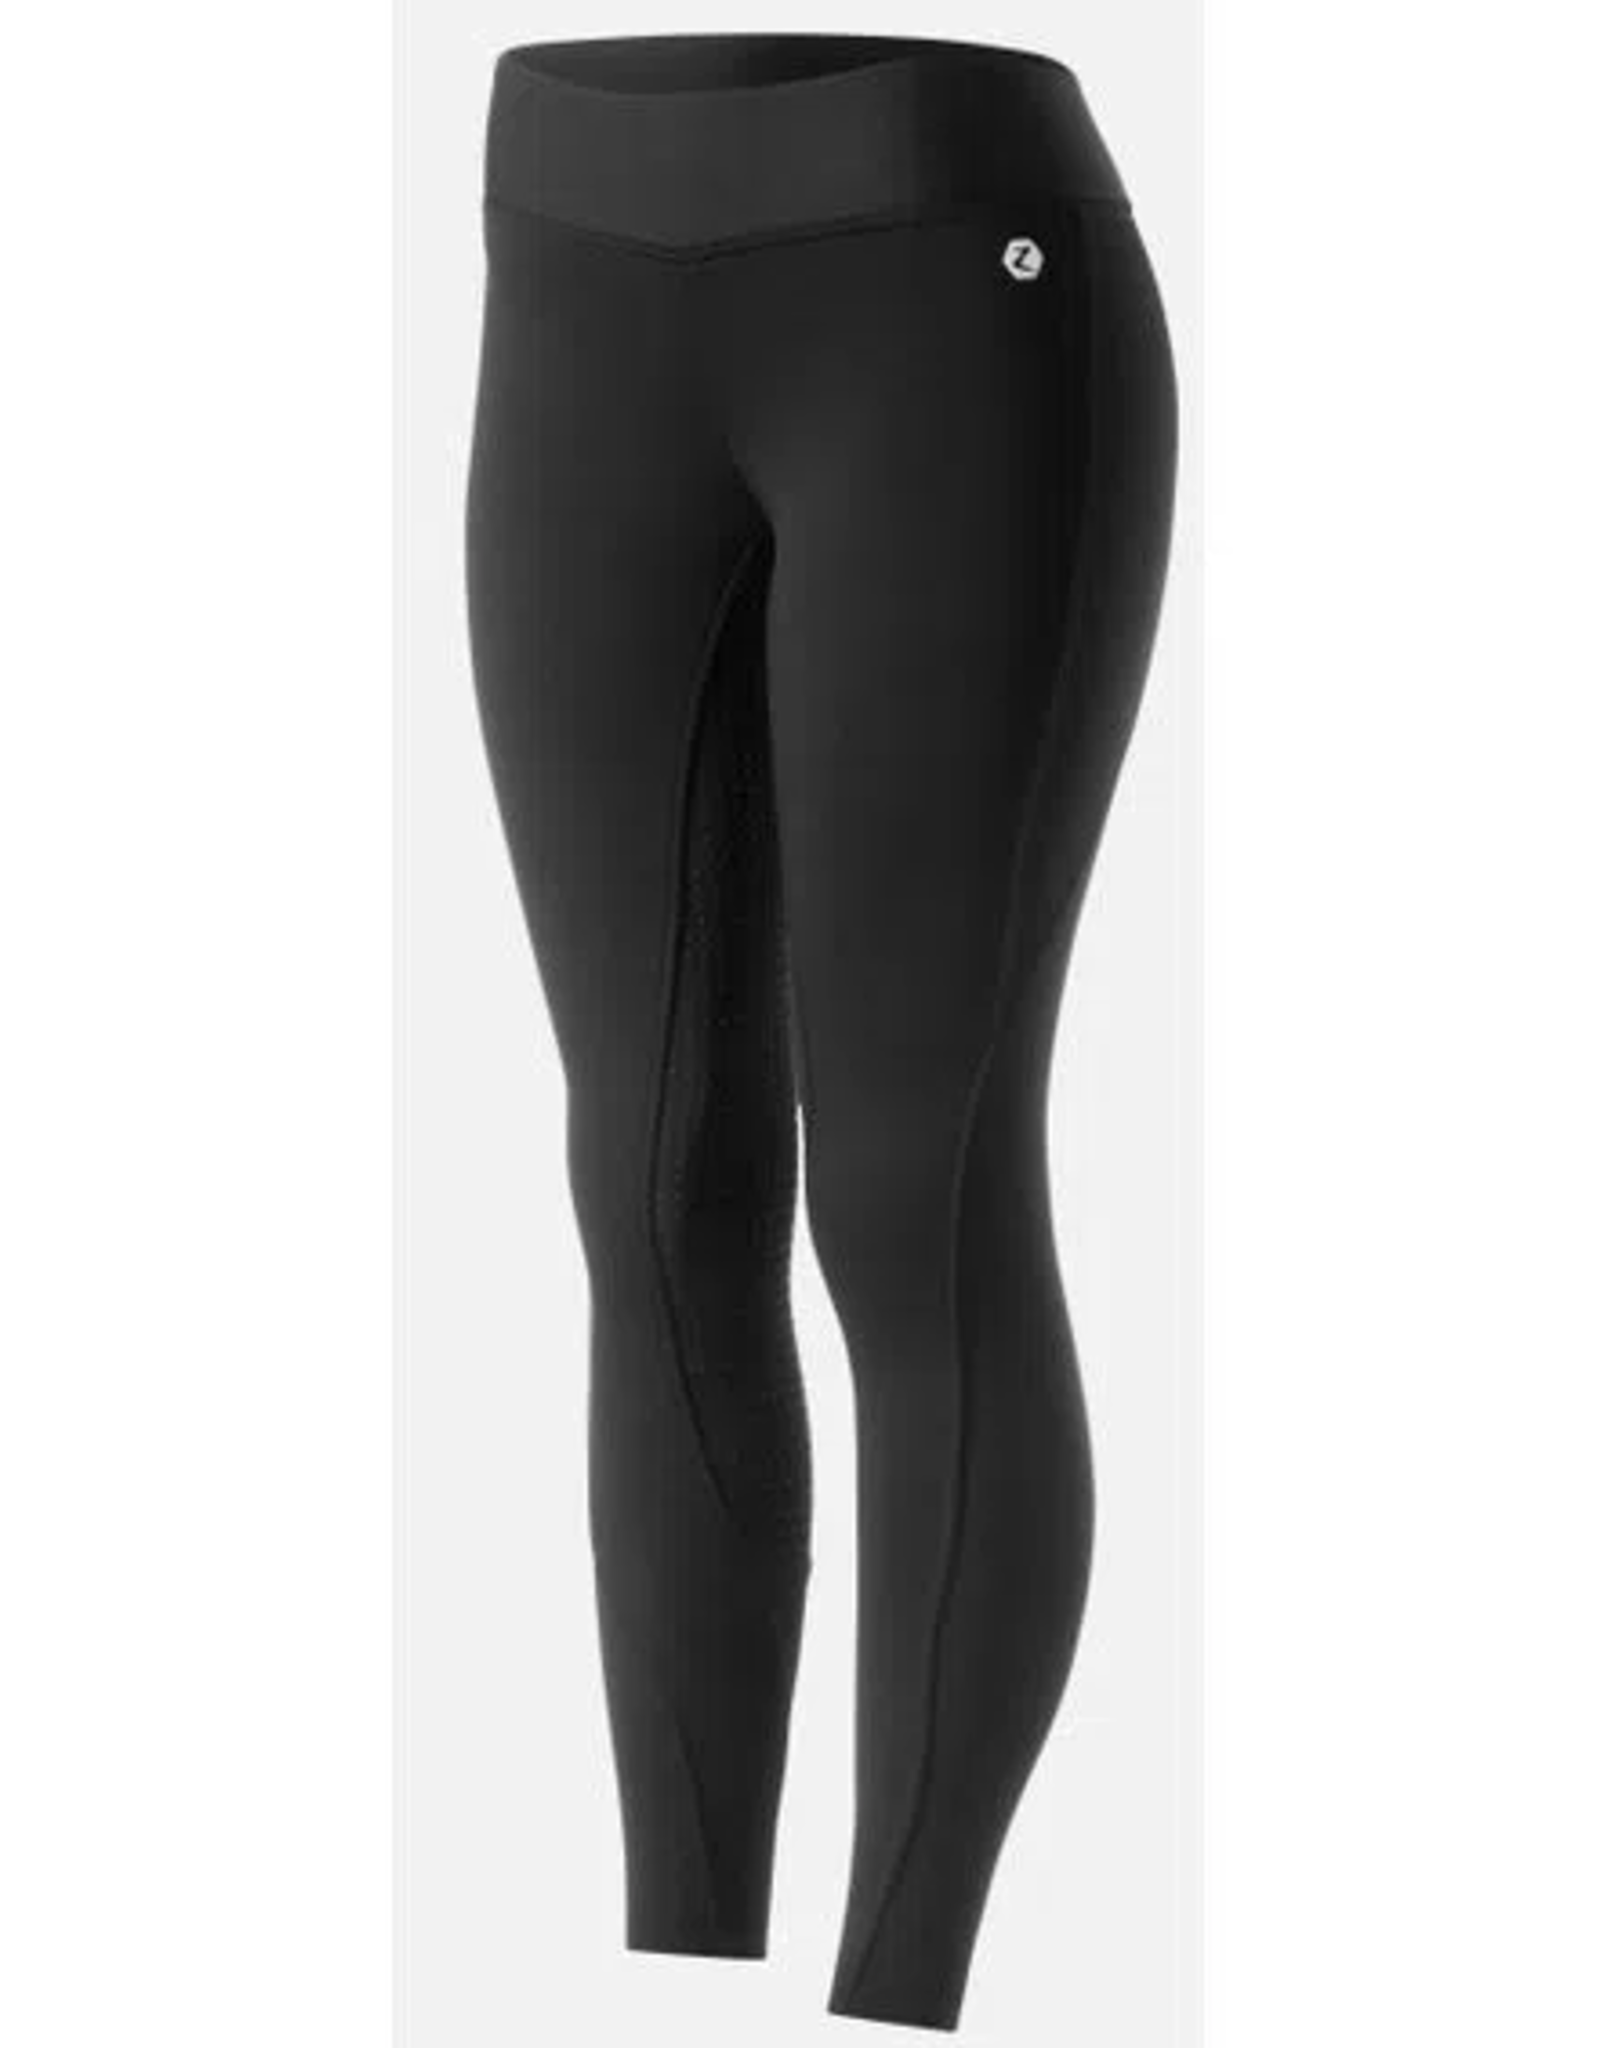 HORZE WOMEN'S ACTIVE FULL SEAT WINTER TIGHTS